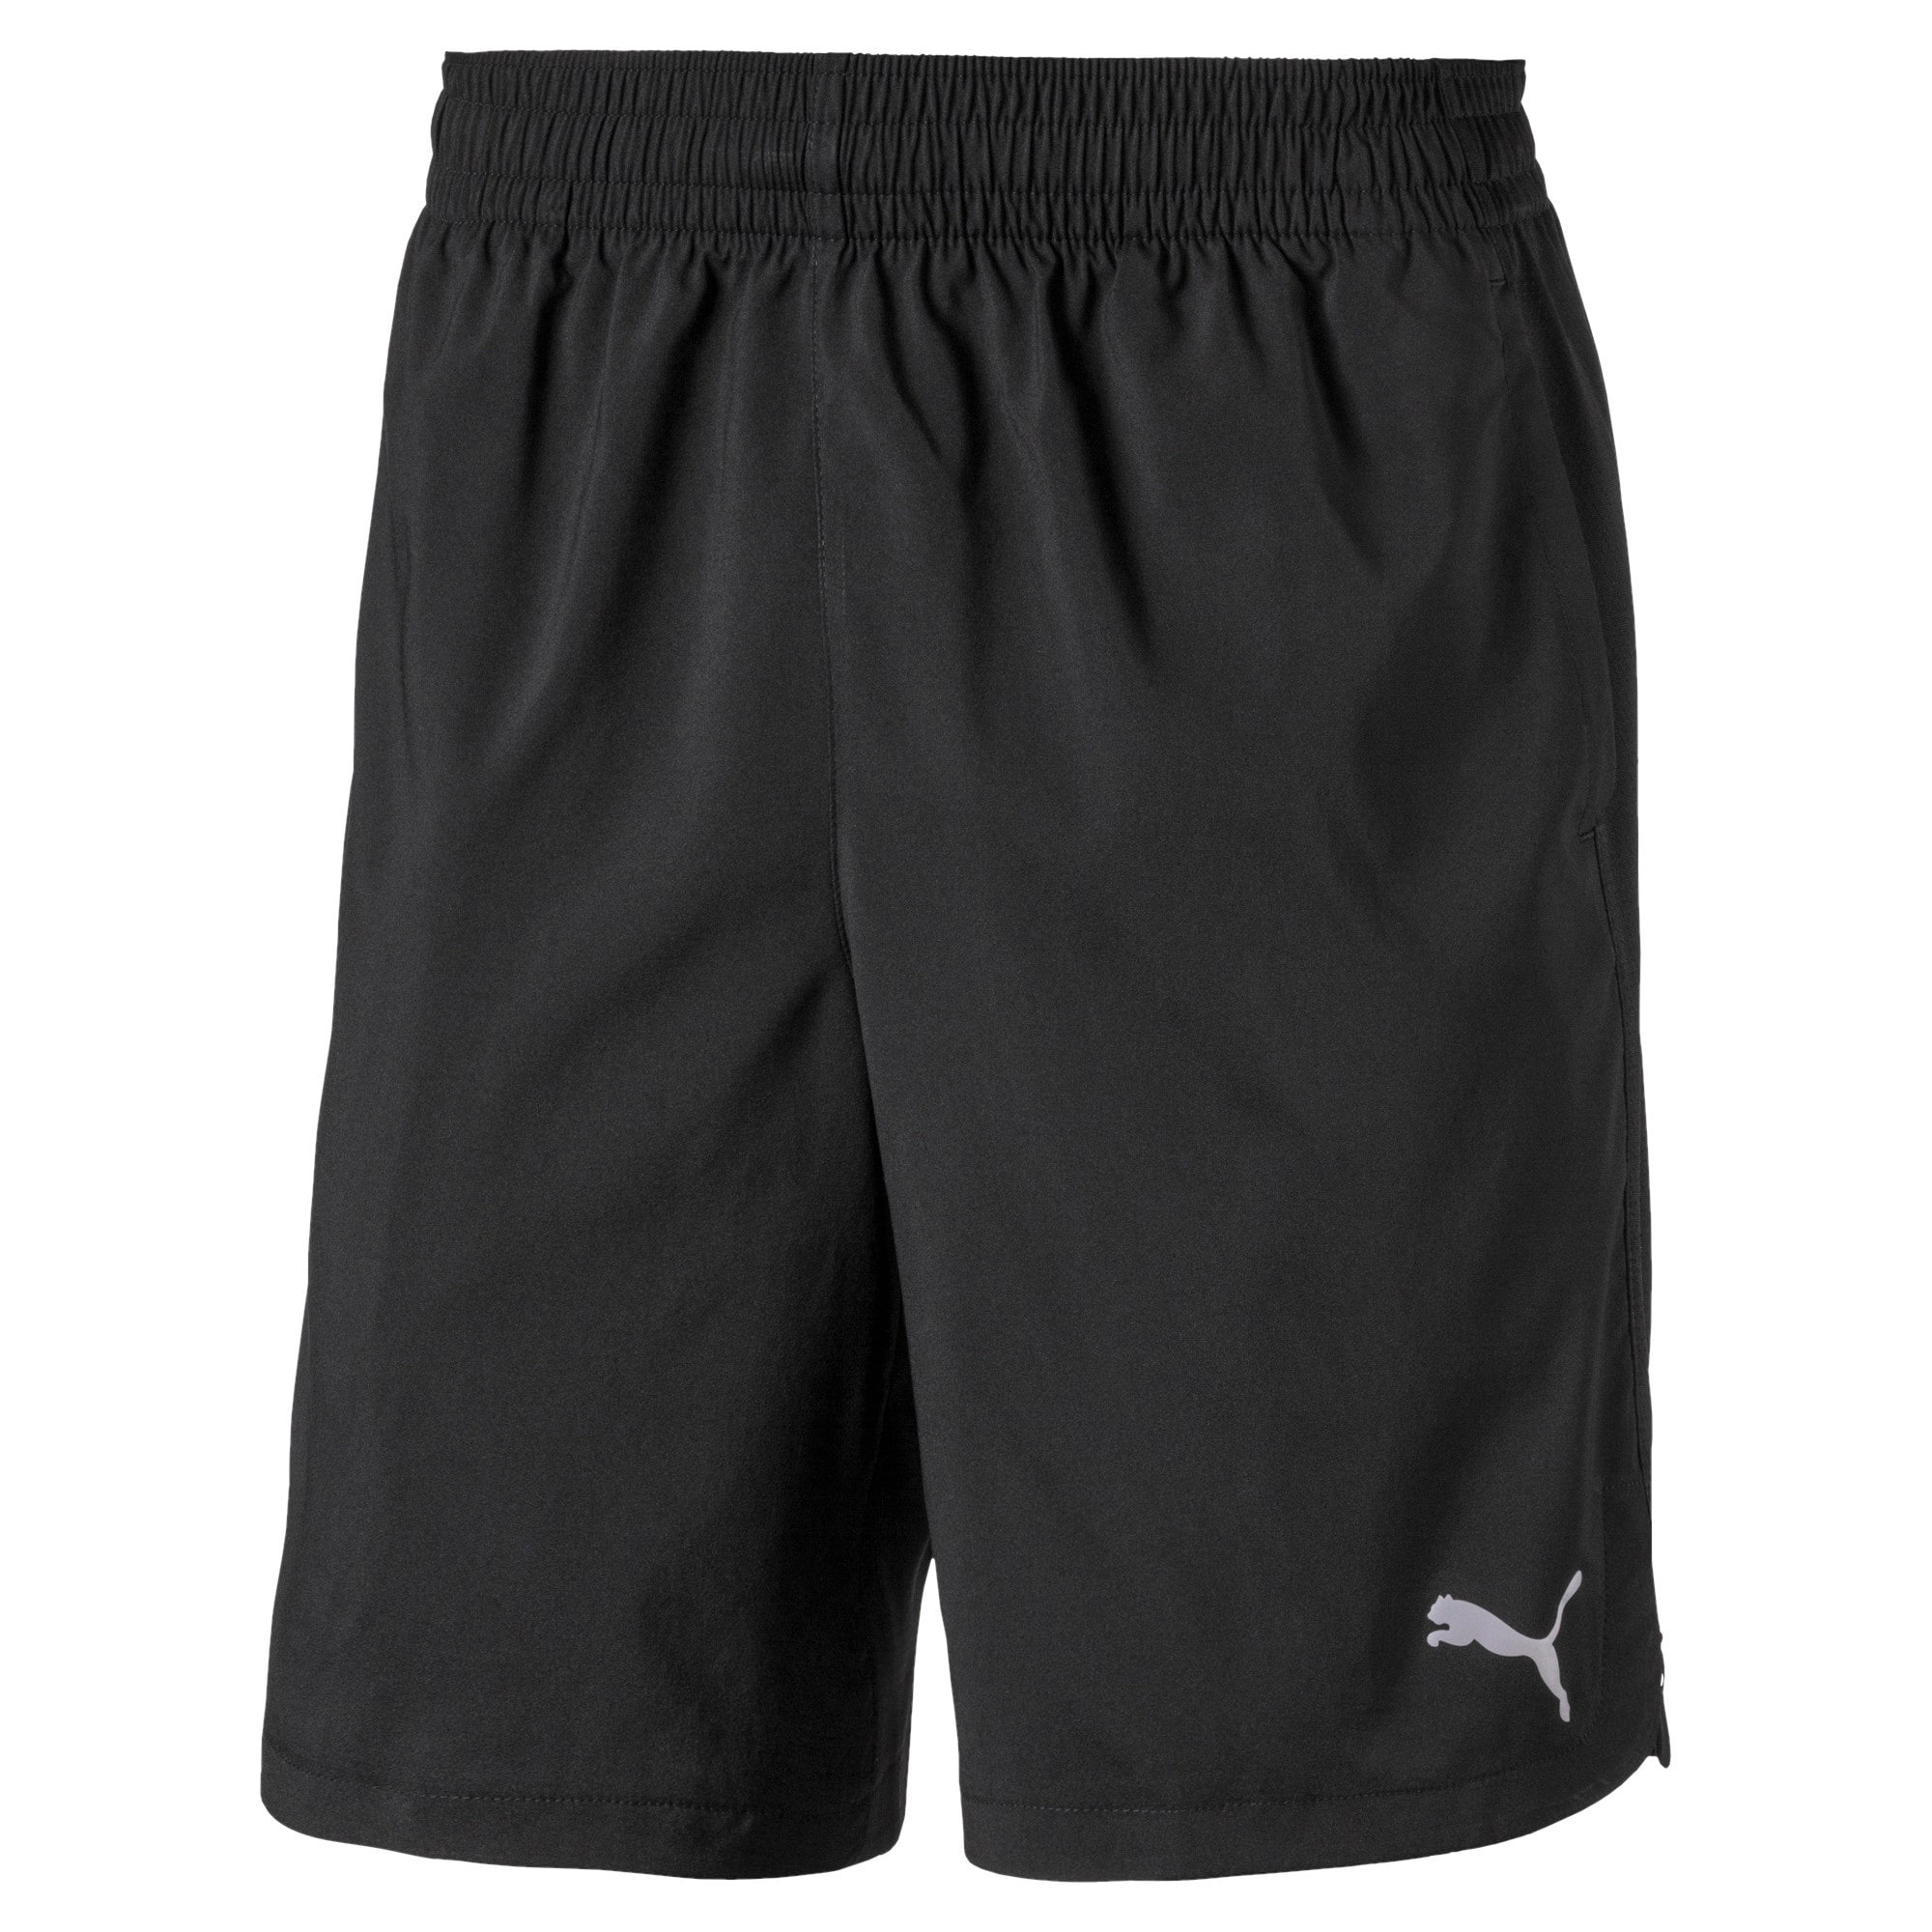 Thumbnail 4 of Woven Men's Training Shorts, Puma Black, medium